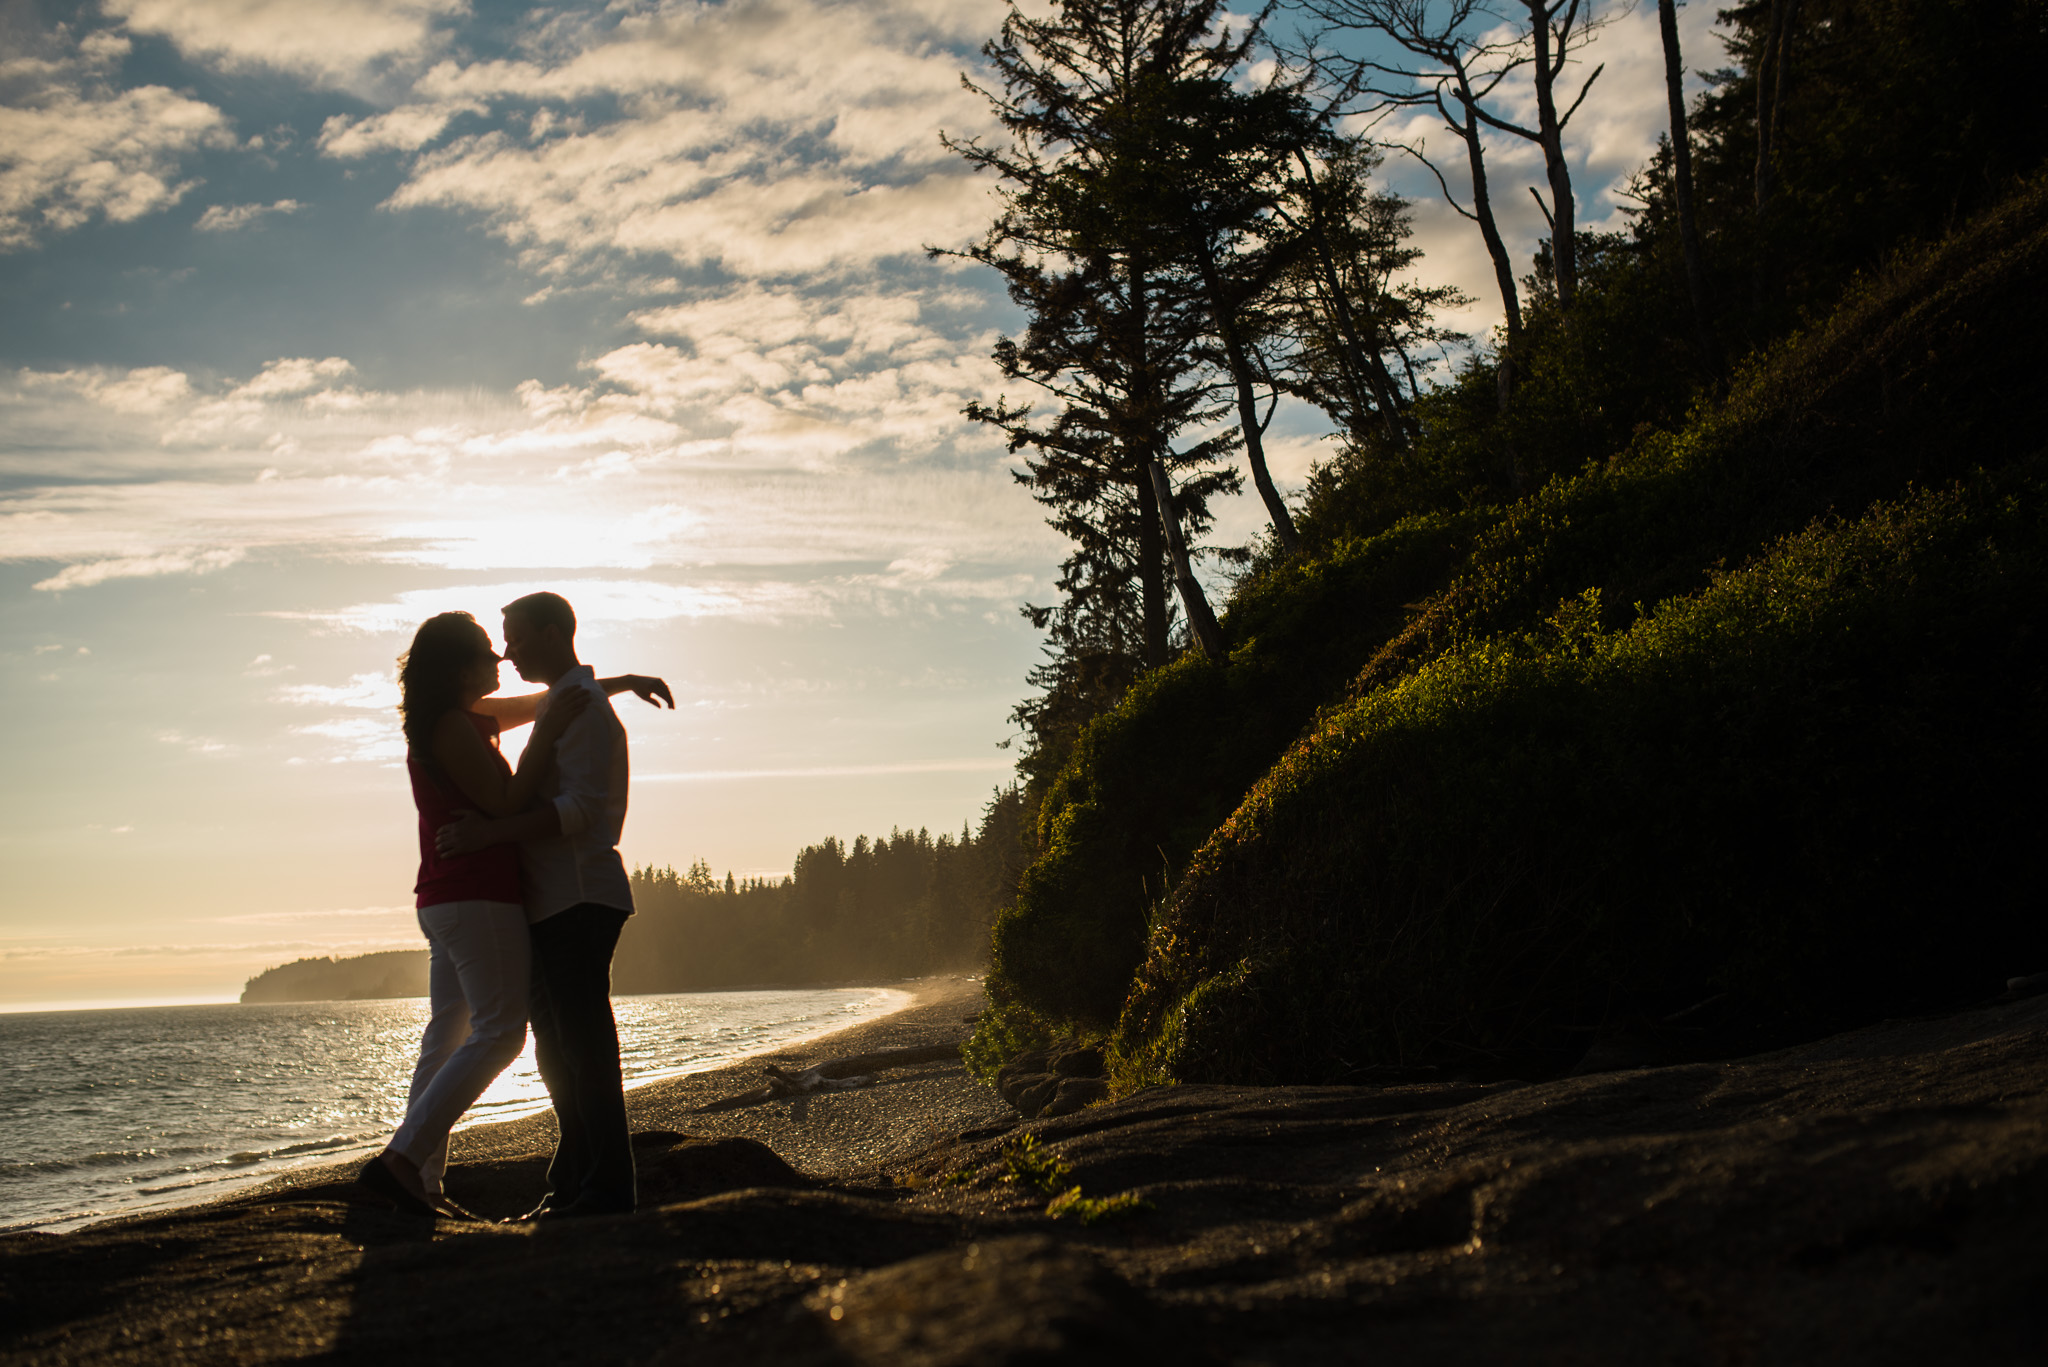 victoria-wedding-photographer-sandcut-beach-engagement-17.jpg